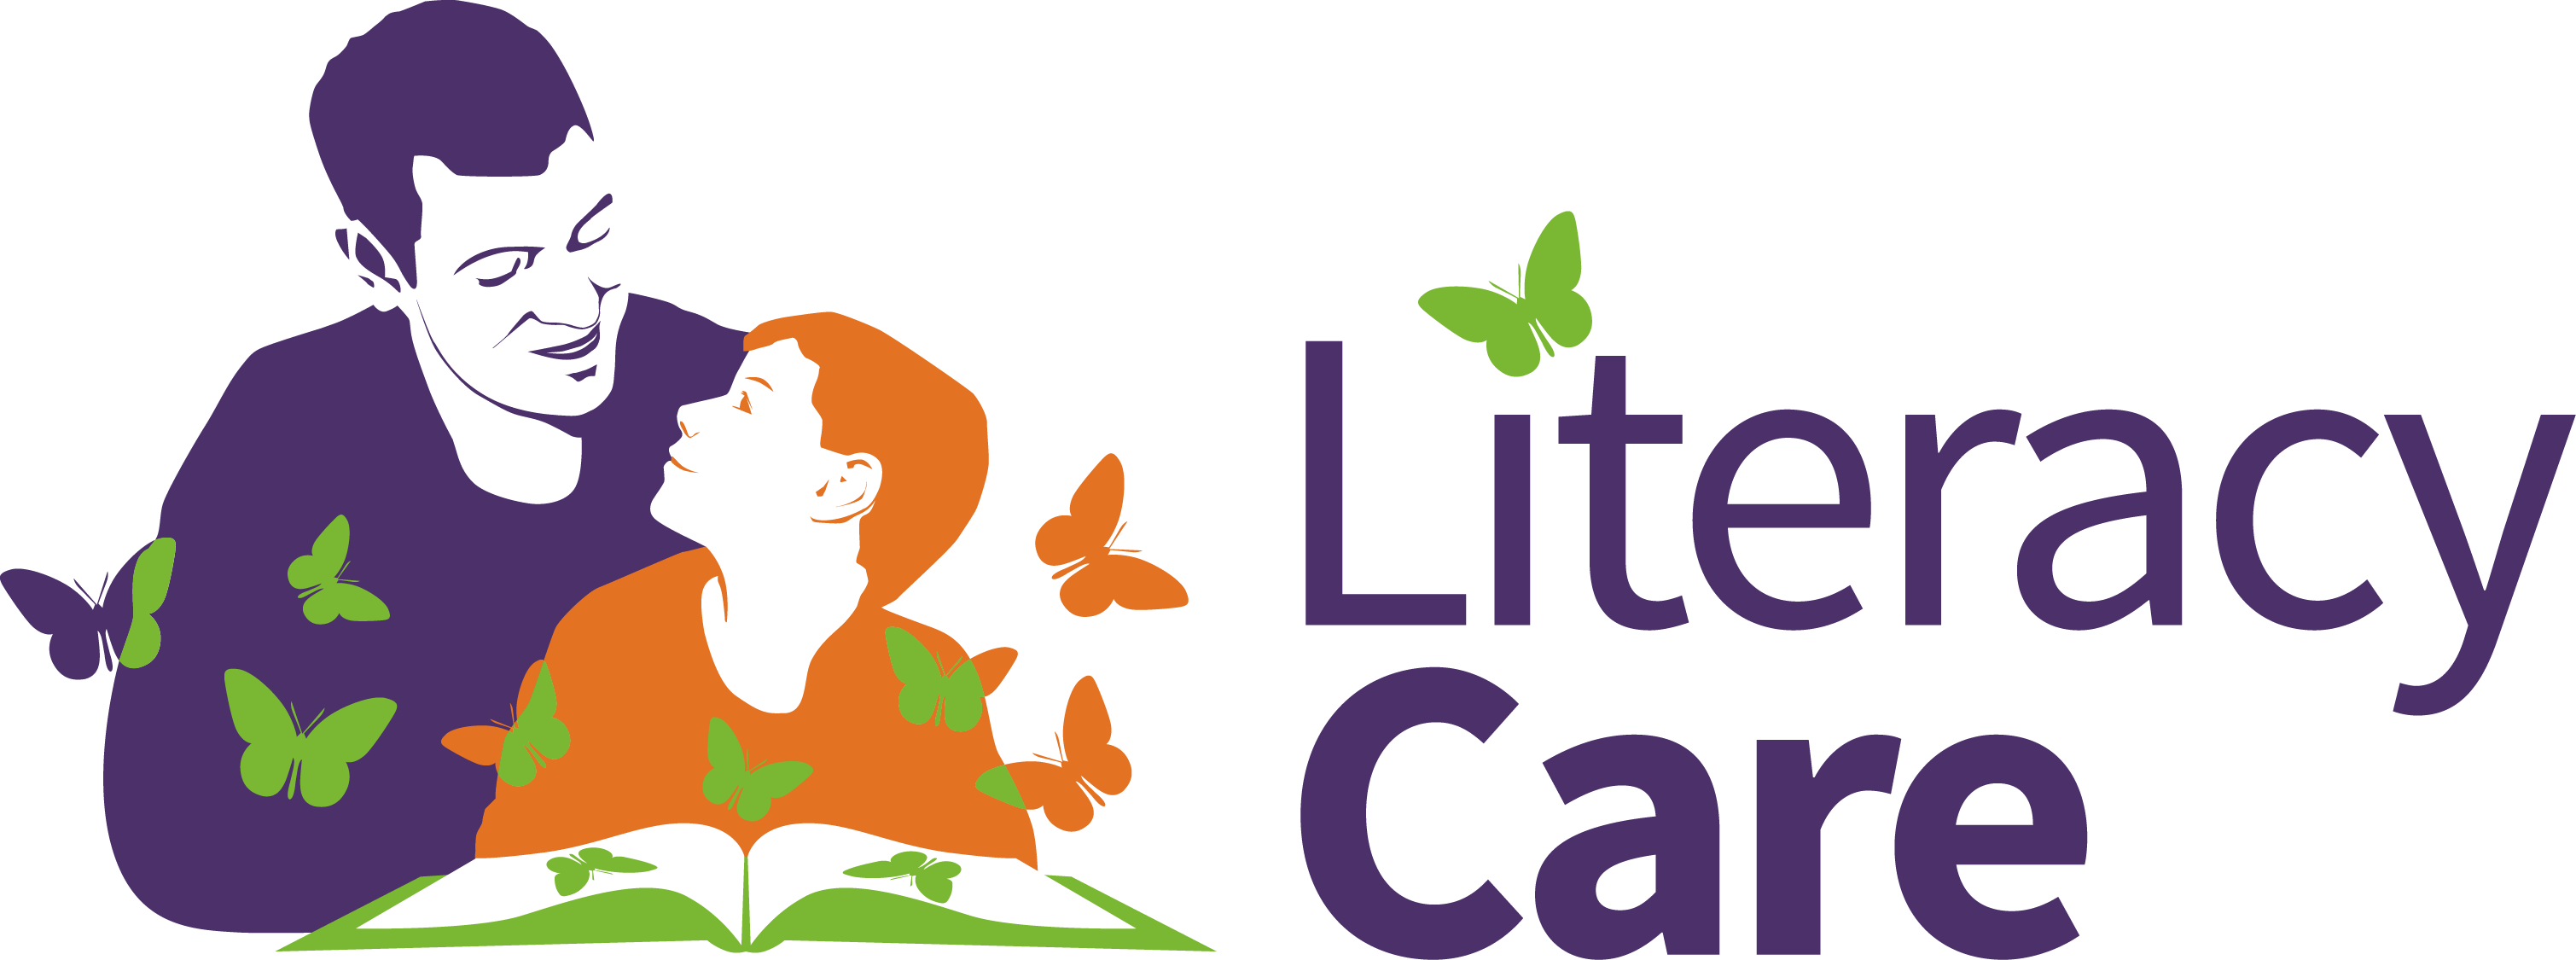 Literacy Care Orange Logo RGB Hori